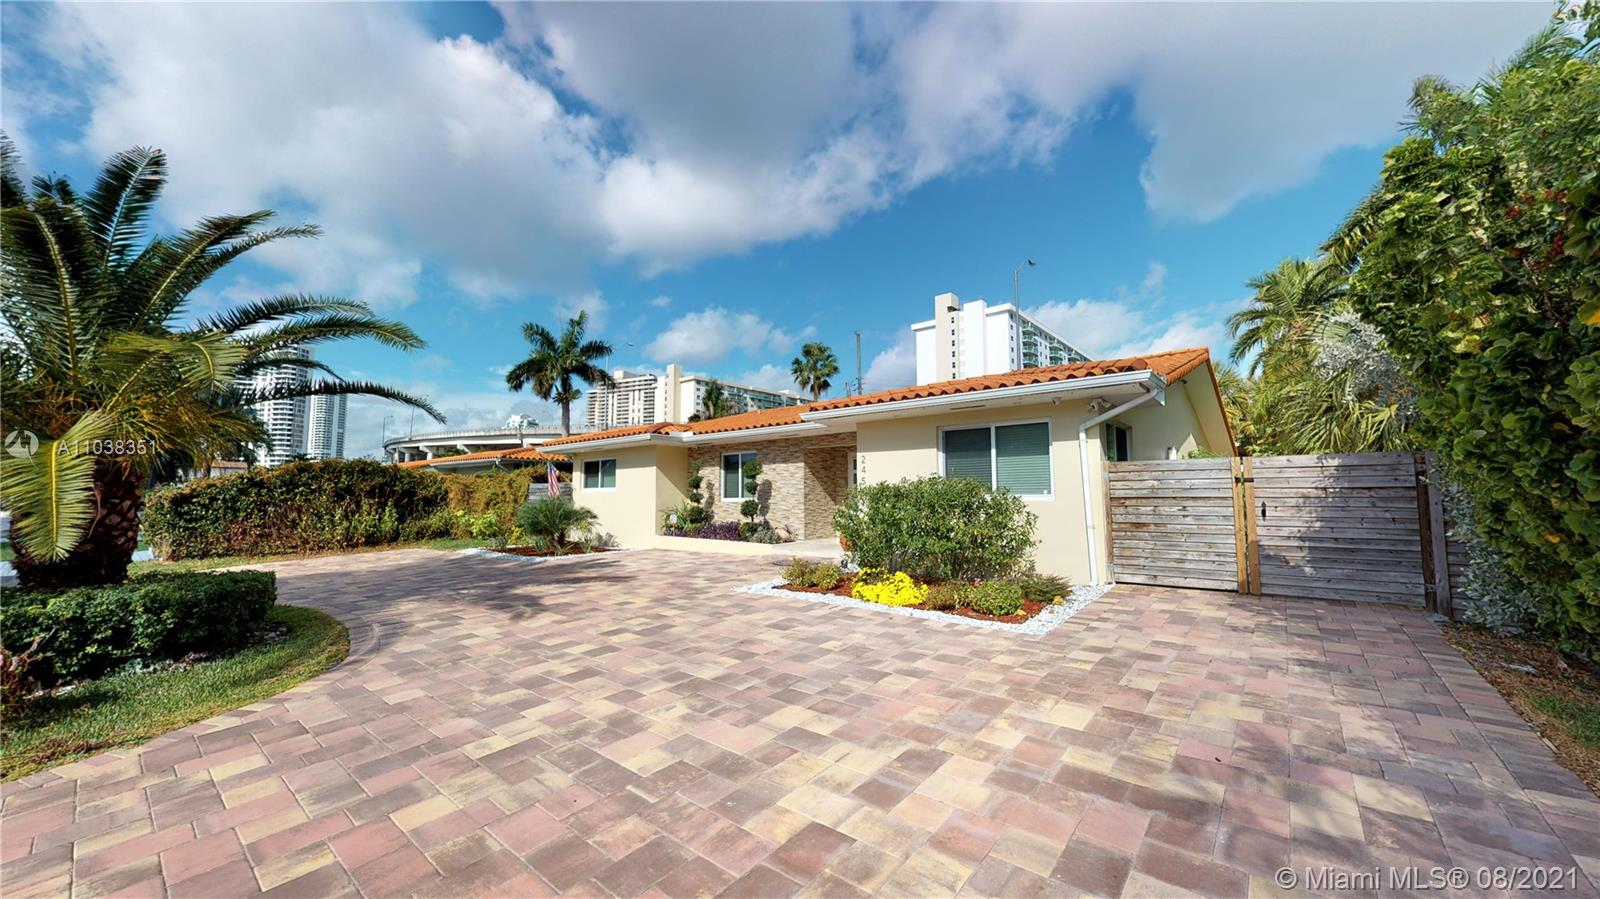 245  191st Ter  For Sale A11038351, FL